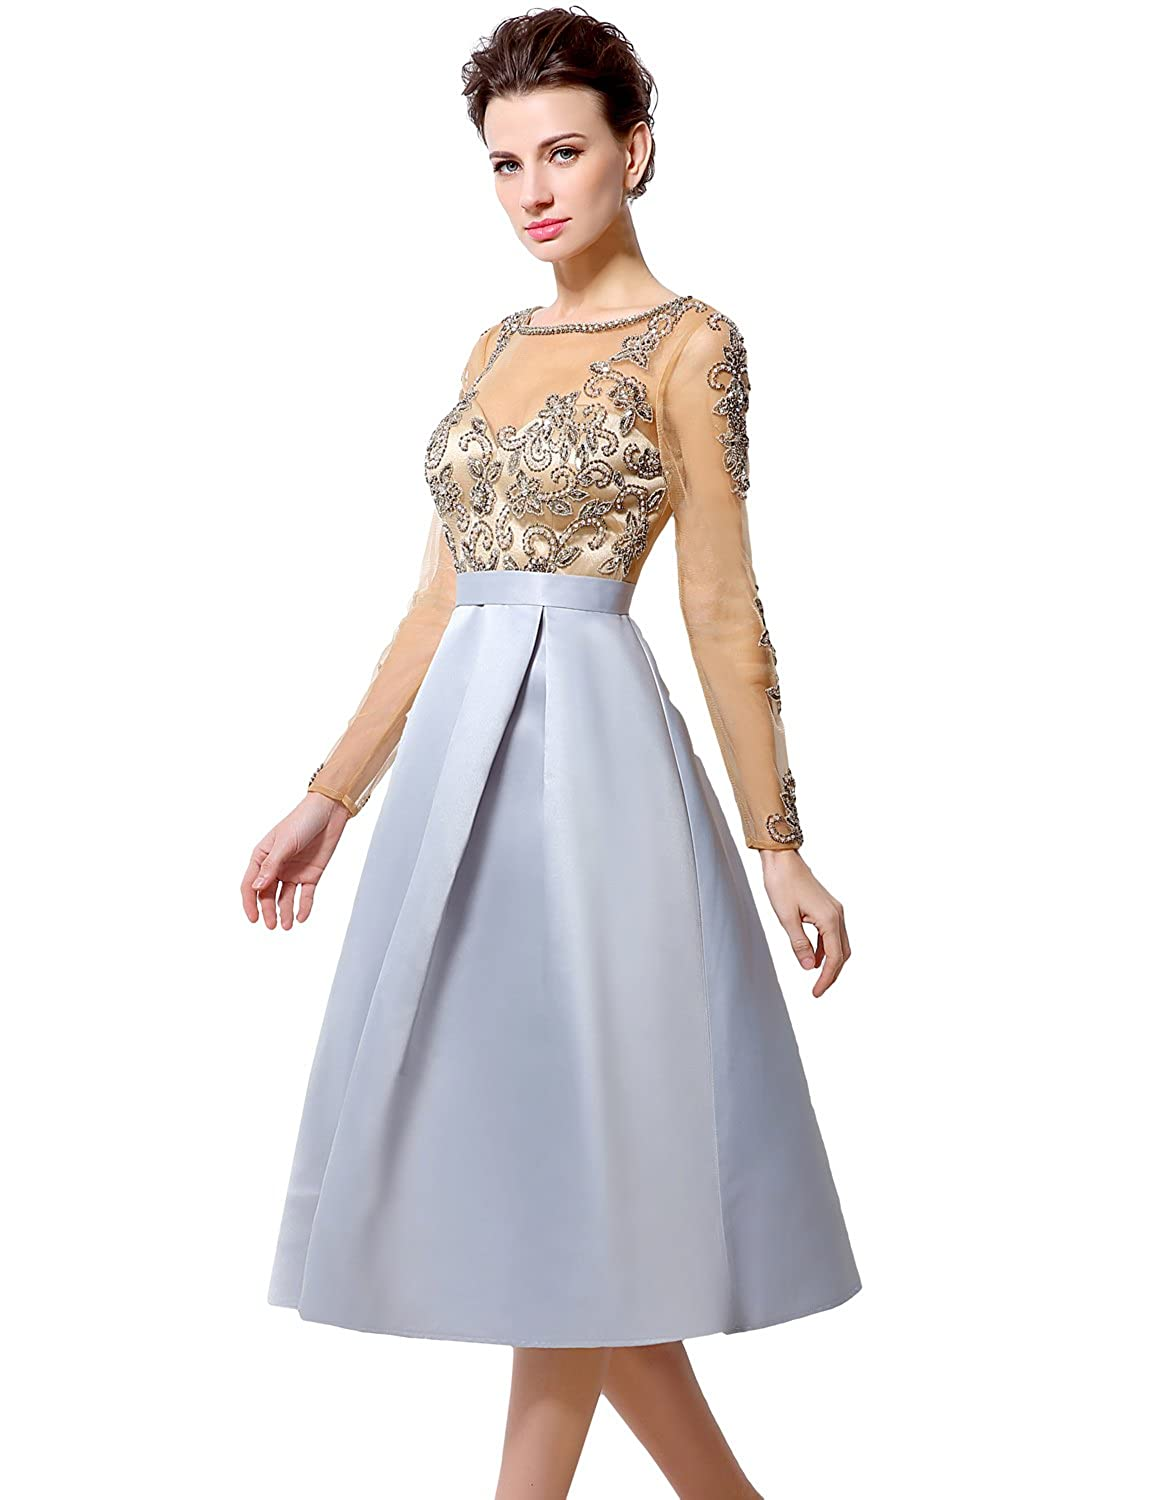 Favebridal Women's Long Sleeve Elegant Prom Dress with Appliques LX015